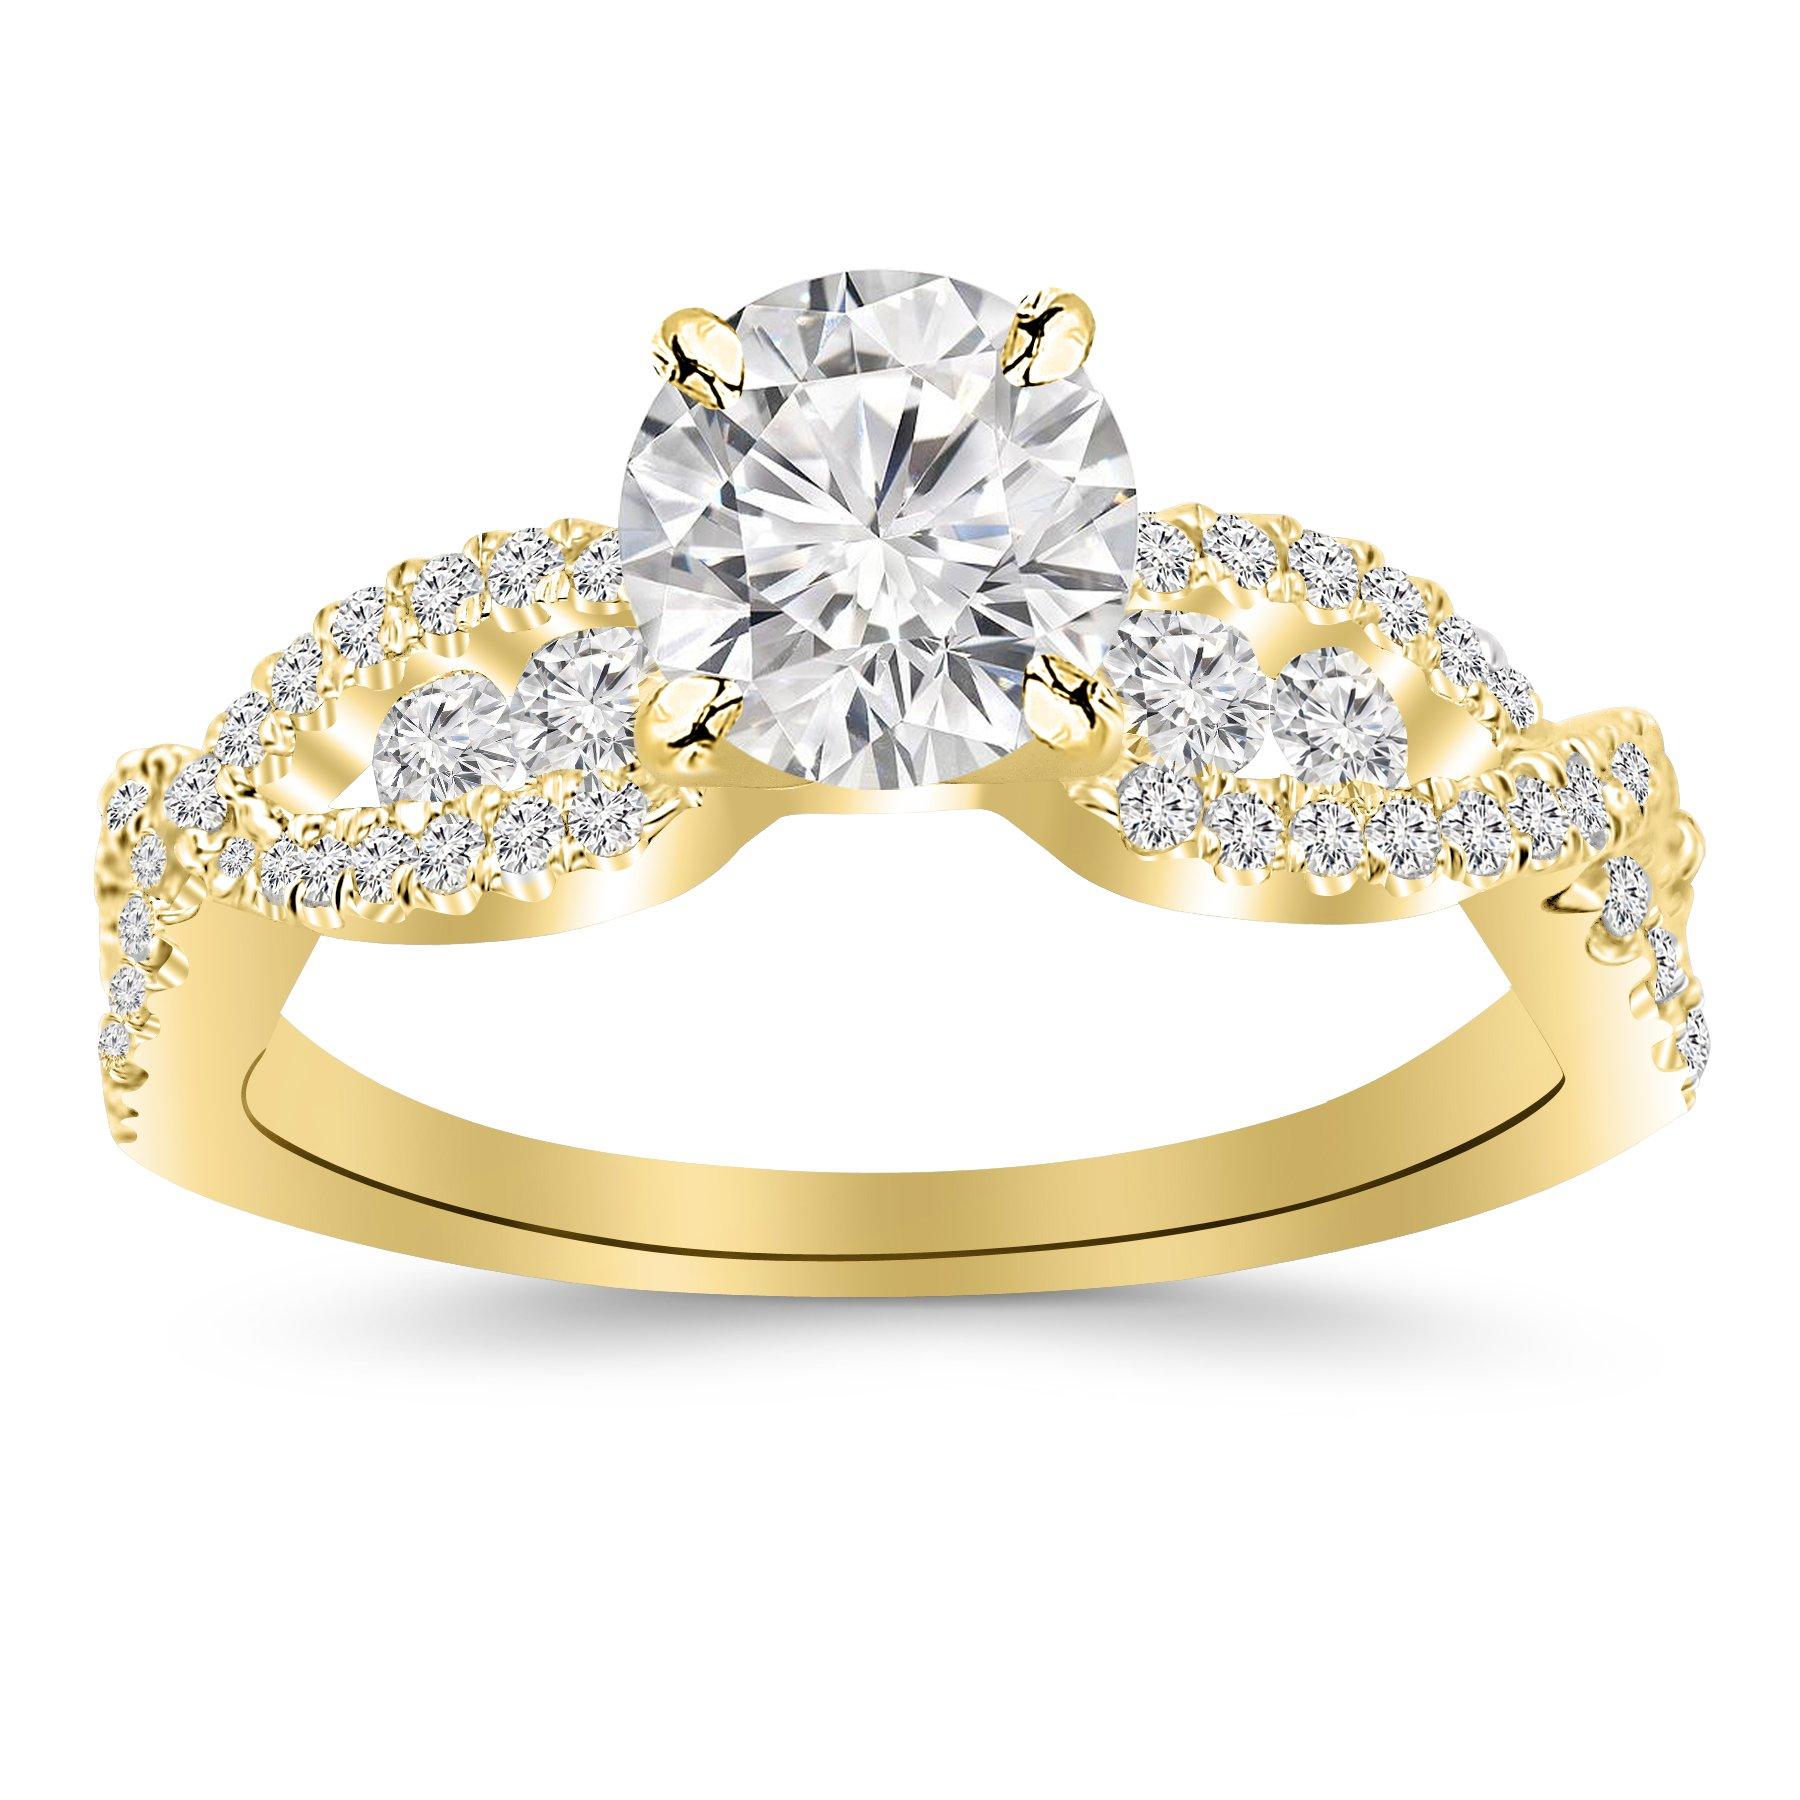 1.05 Carat Designer Twisting Eternity Channel Set Four Prong Diamond Engagement Ring 14K Yellow Gold with a 0.45 Carat I-J SI2-I1 Round Brilliant Cut/Shape Center